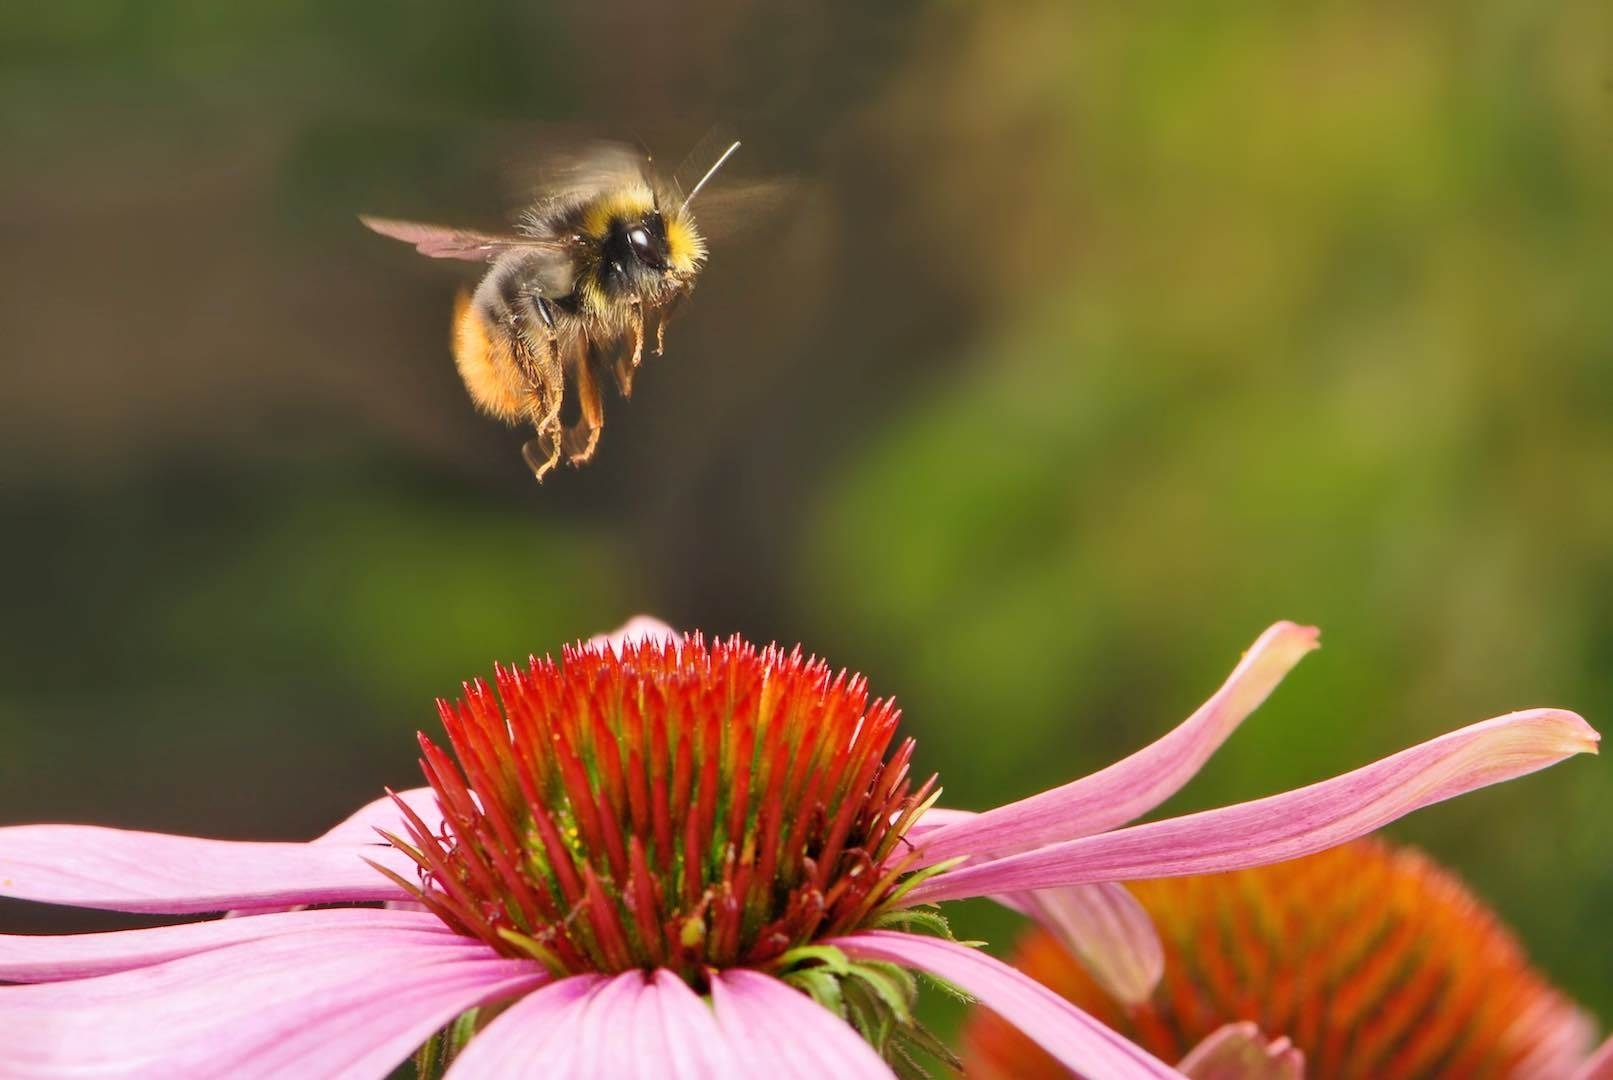 Plant A Bee Garden - The Honeybee Conservancythe Honeybee Conservancy intended for Garden Flowers Good For Bees